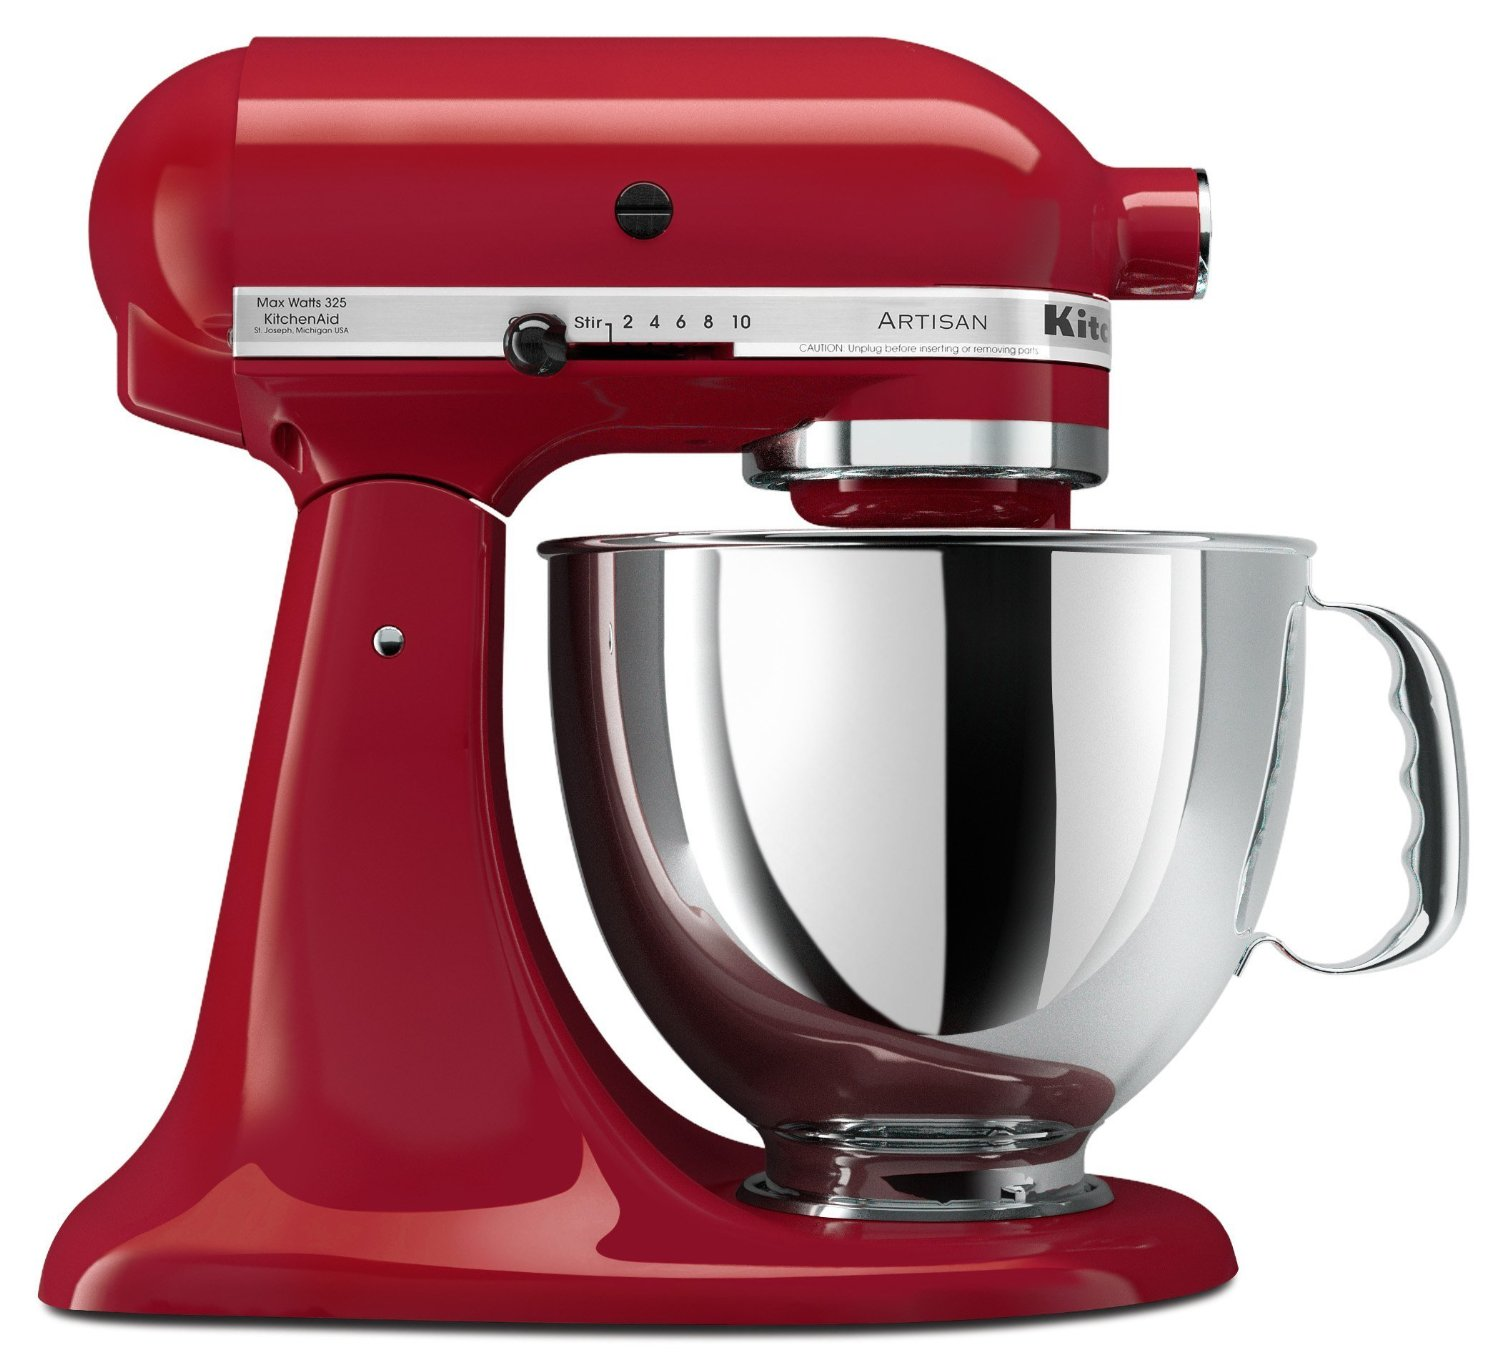 Tuesday u2019s Tools and Tips Bosch Mixer or Kitchen Aid